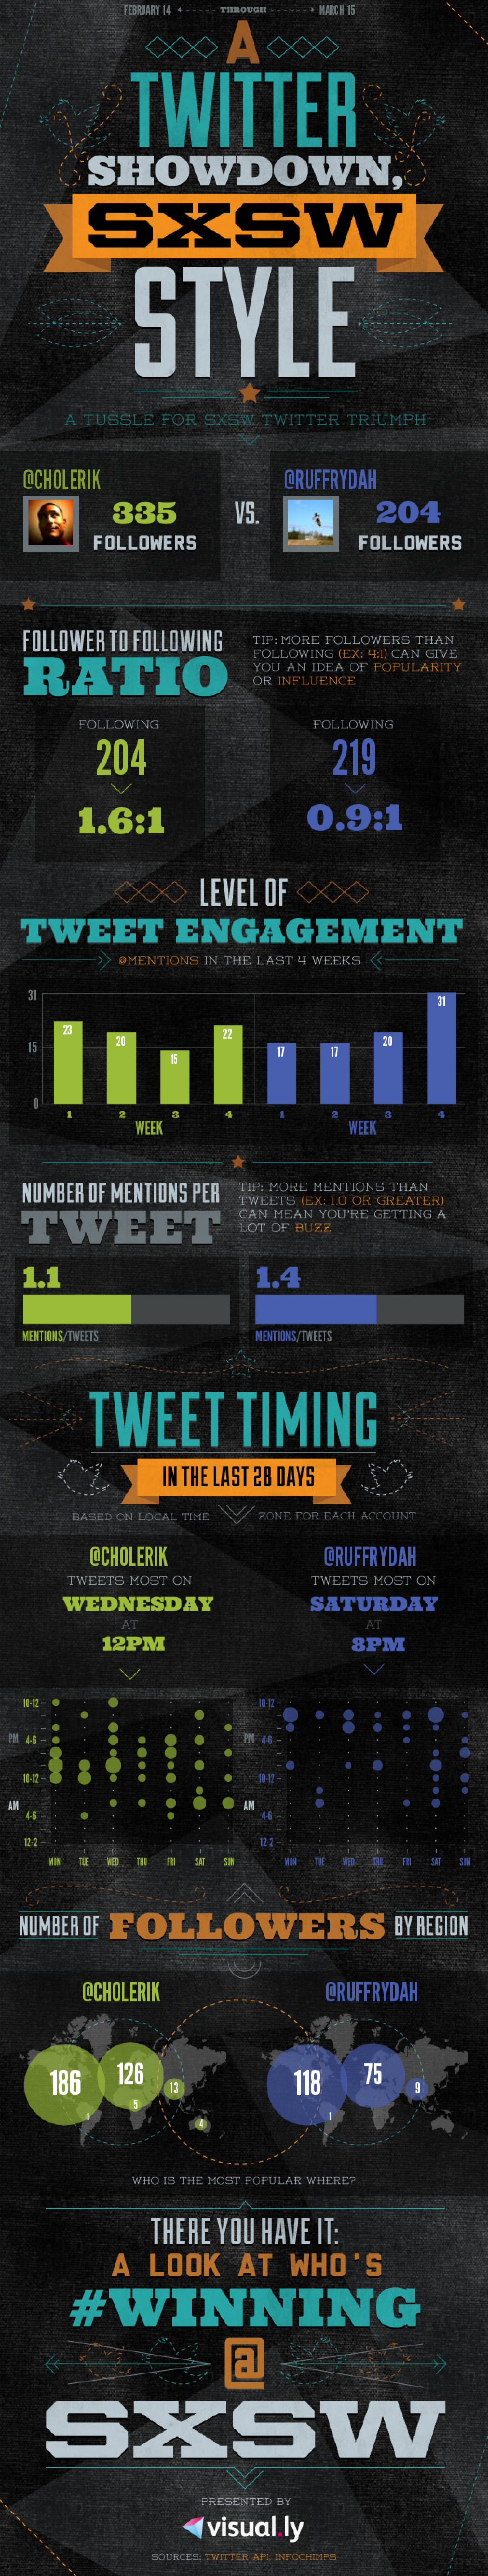 Twitter Battle Infographic